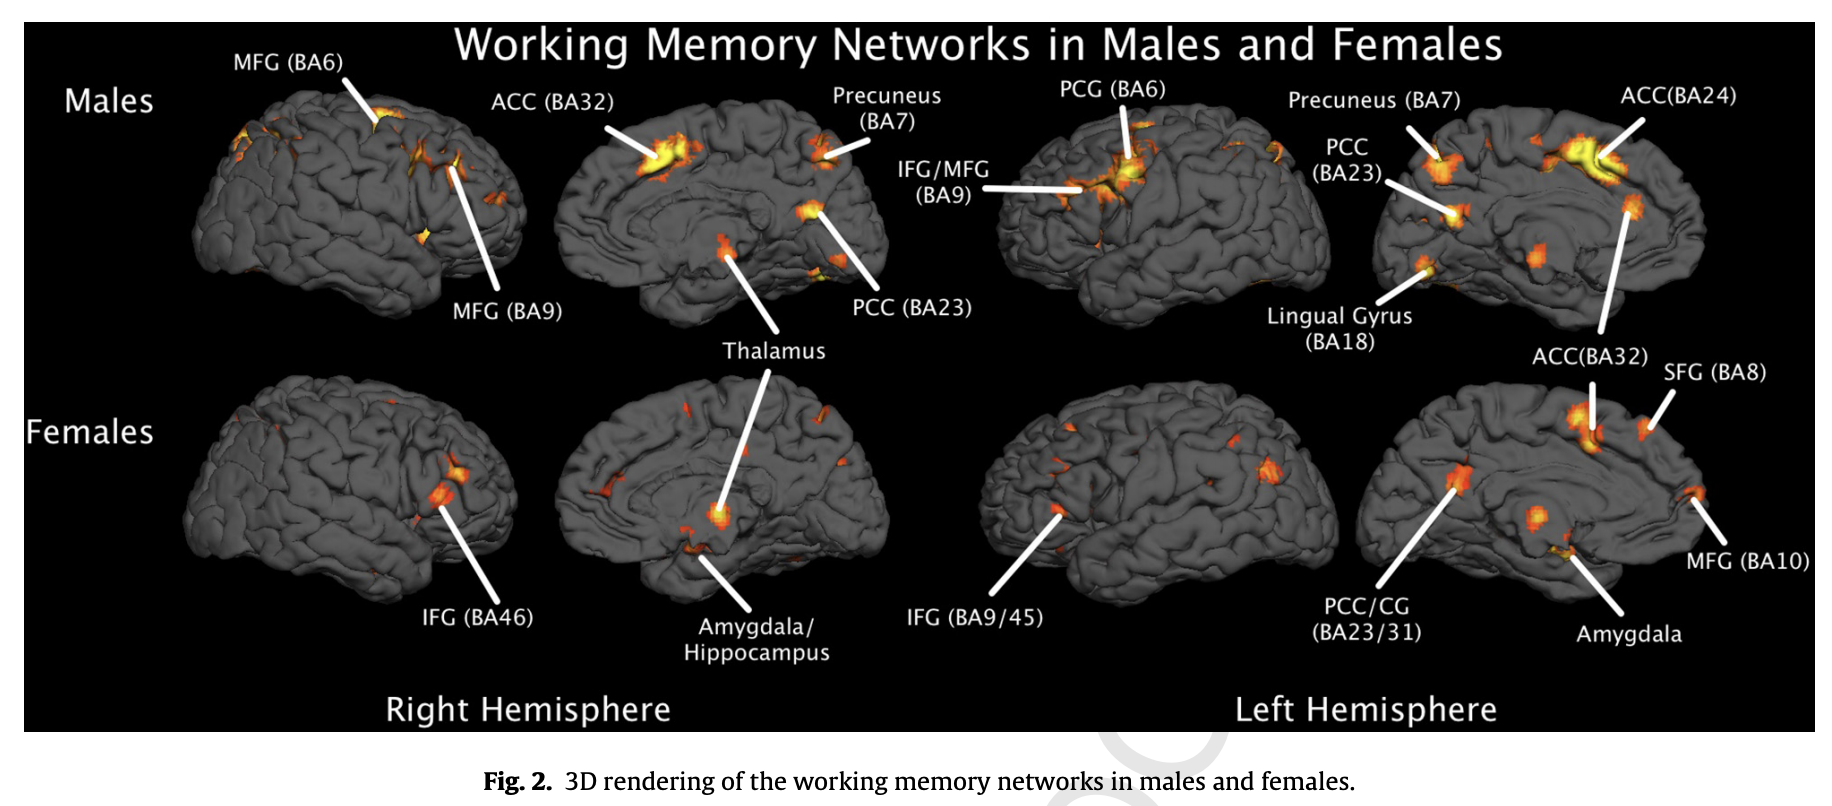 Fig. 2. 3D rendering of the working memory networks in males and females by Ashley C. Hill a, Angela R. Lairdb, Jennifer L. Robinson